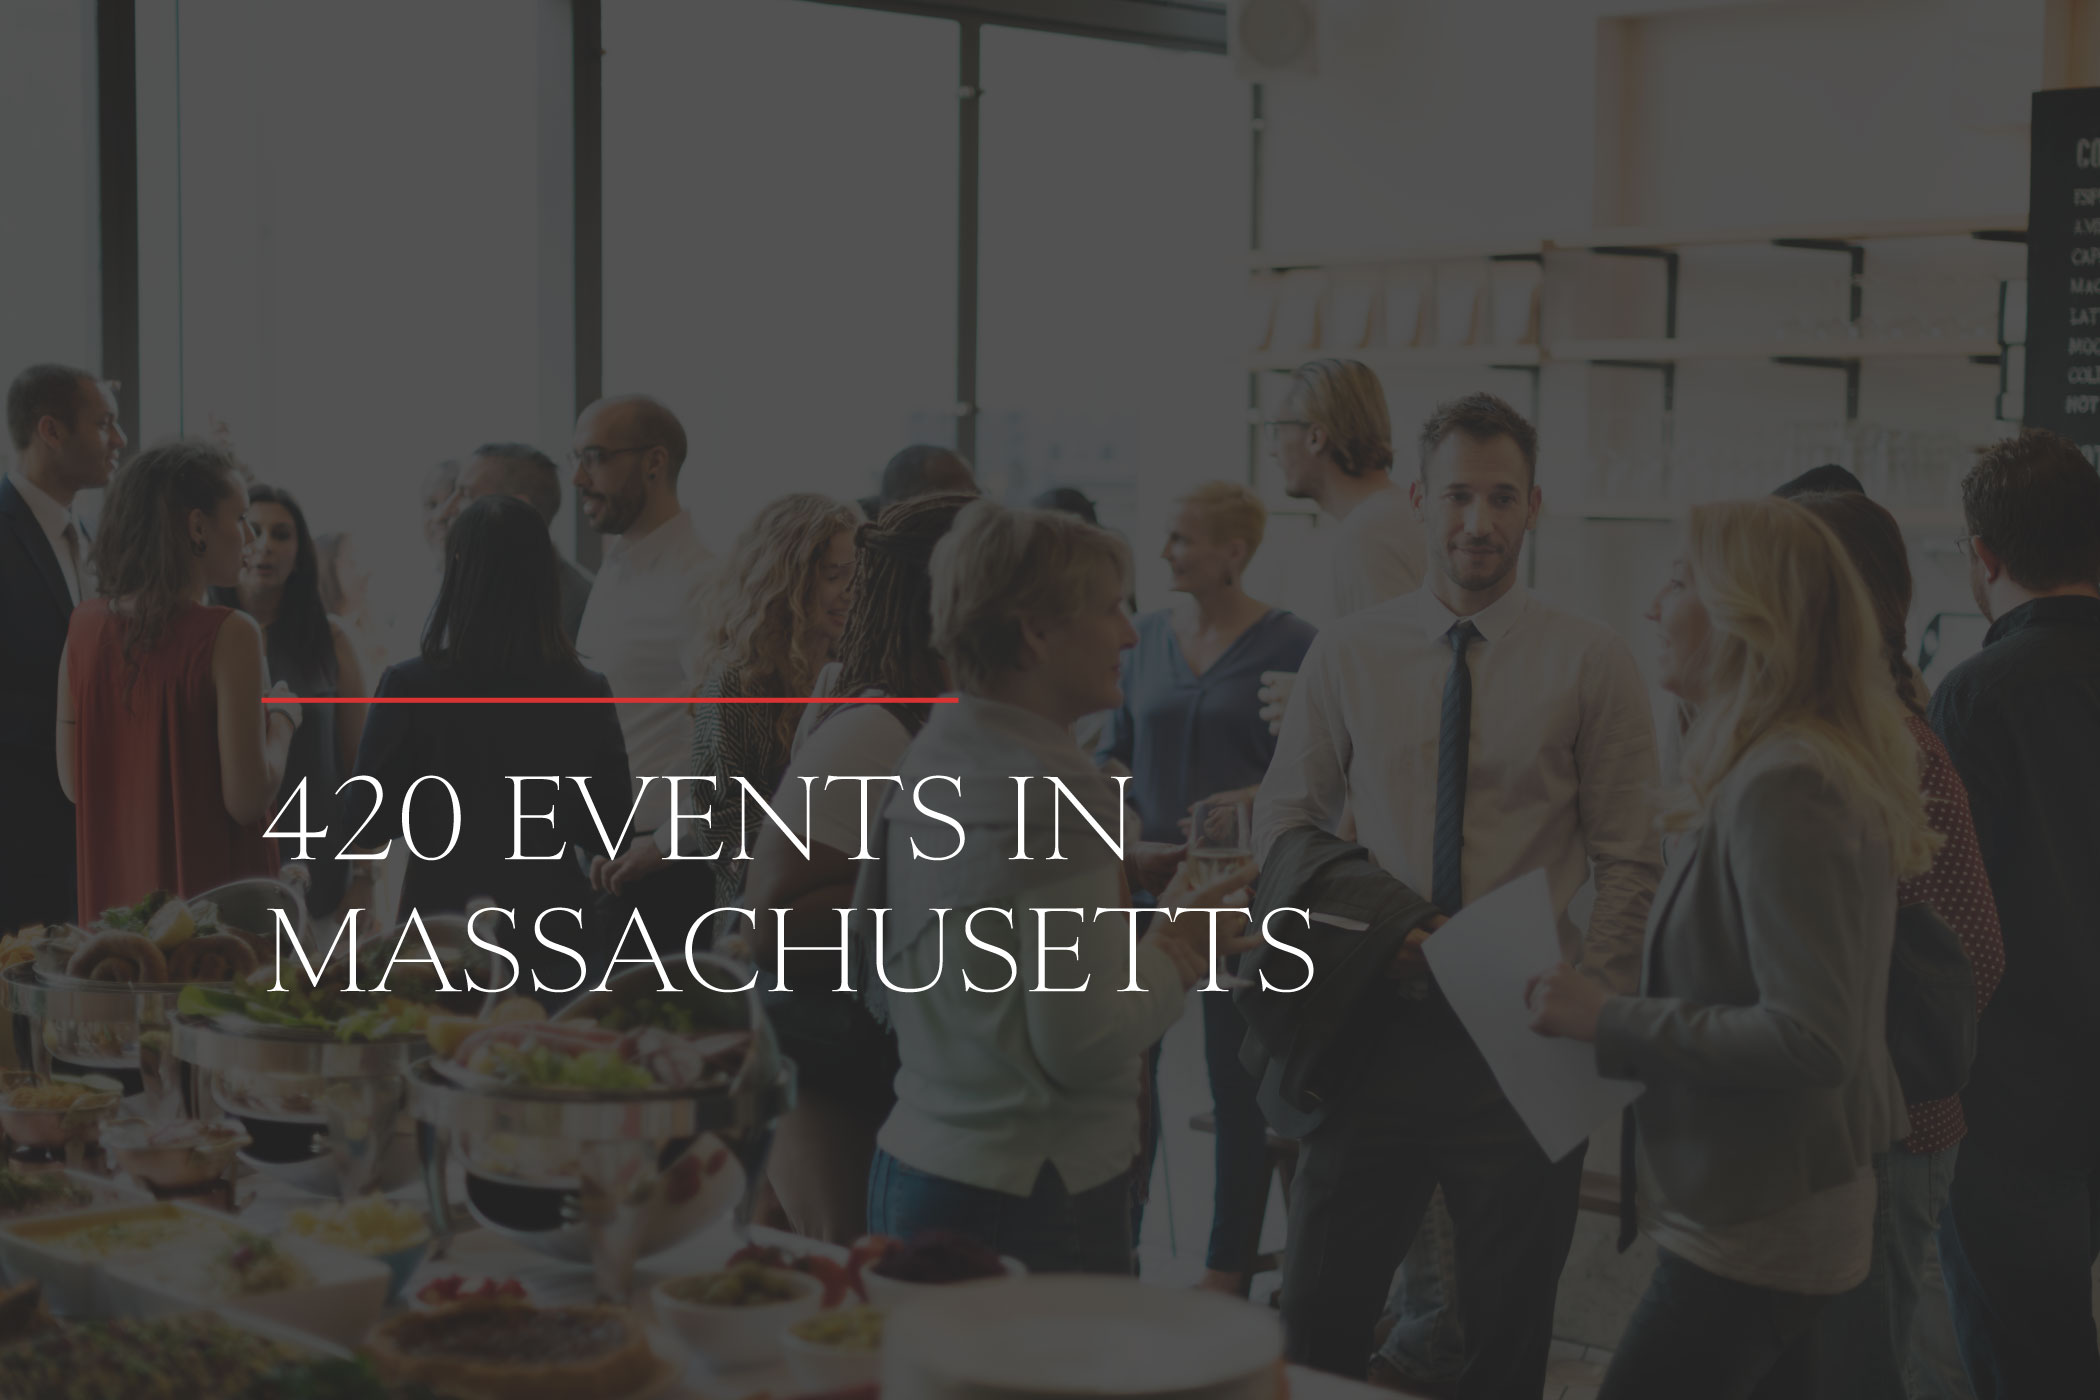 420 Events in Massachusetts in 2020